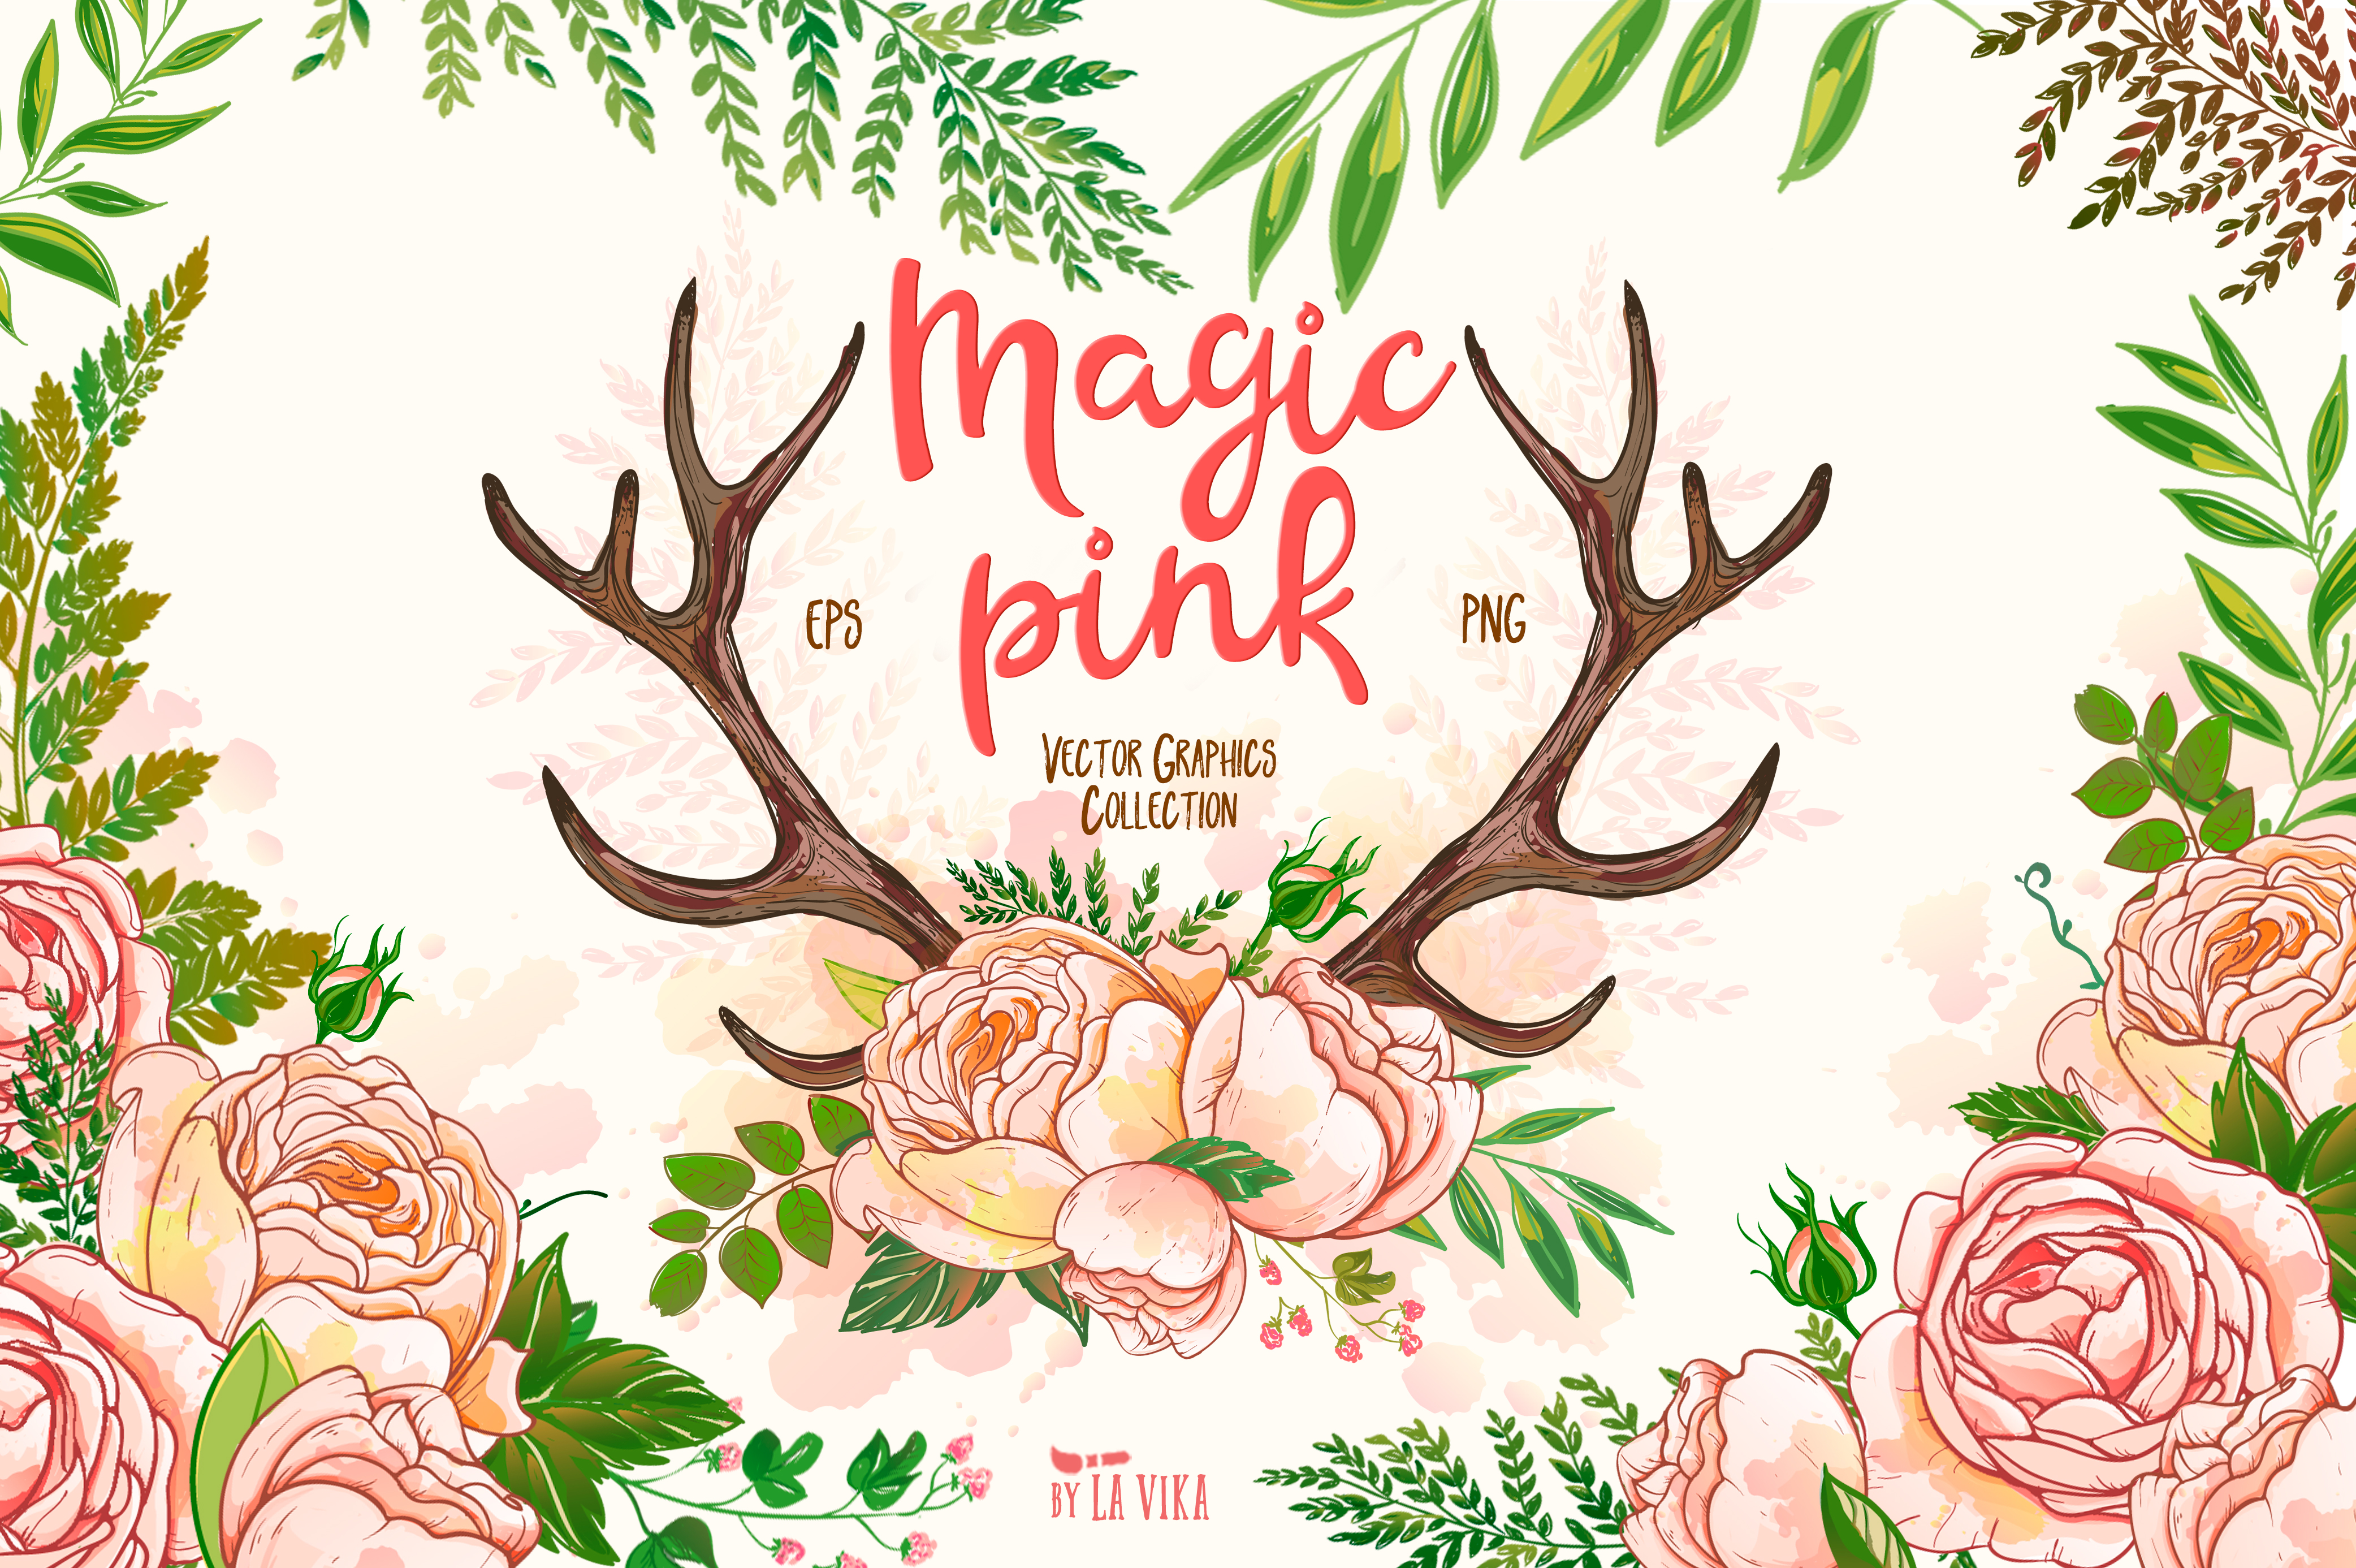 Vector graphics collection: Magic pink example image 1